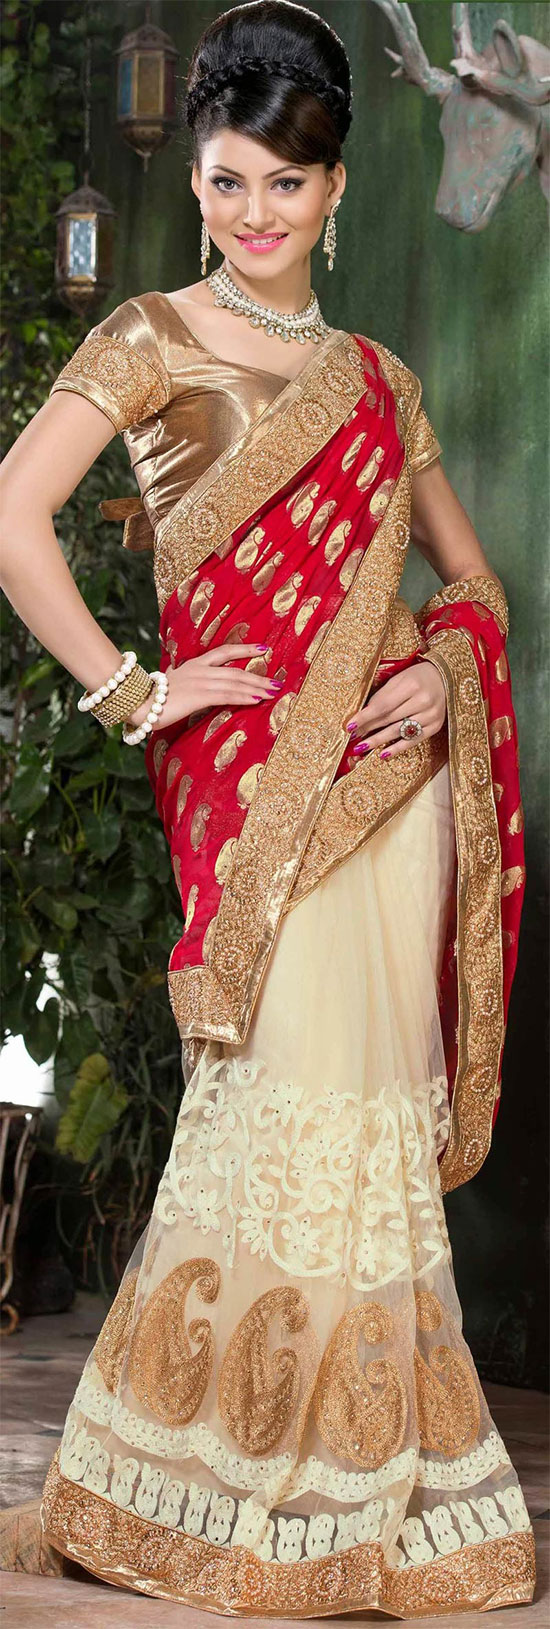 Urvashi Rautela In Cream And Red Net Saree